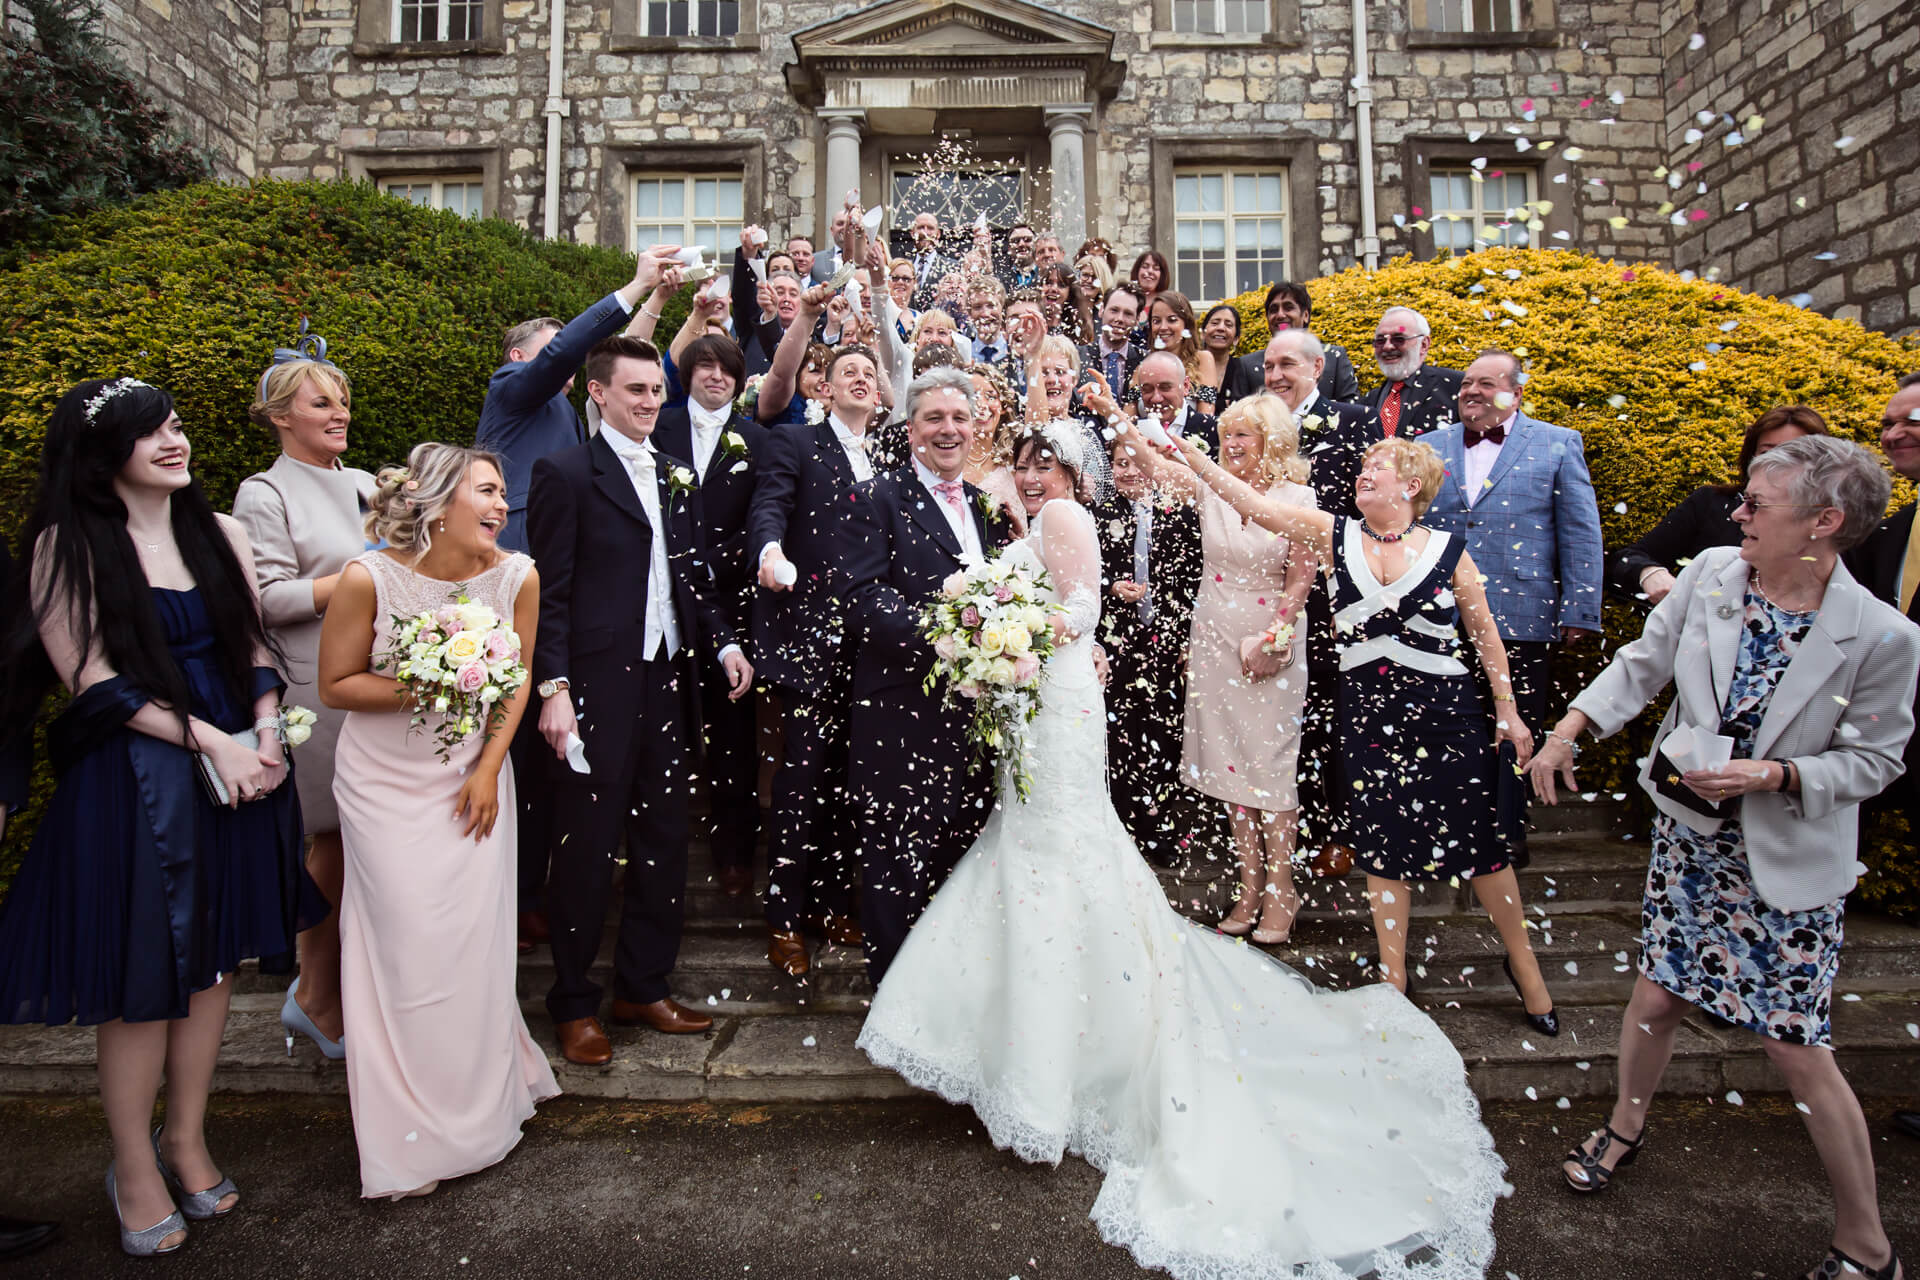 Bride and groom showered with confetti at Hazlewood Castle